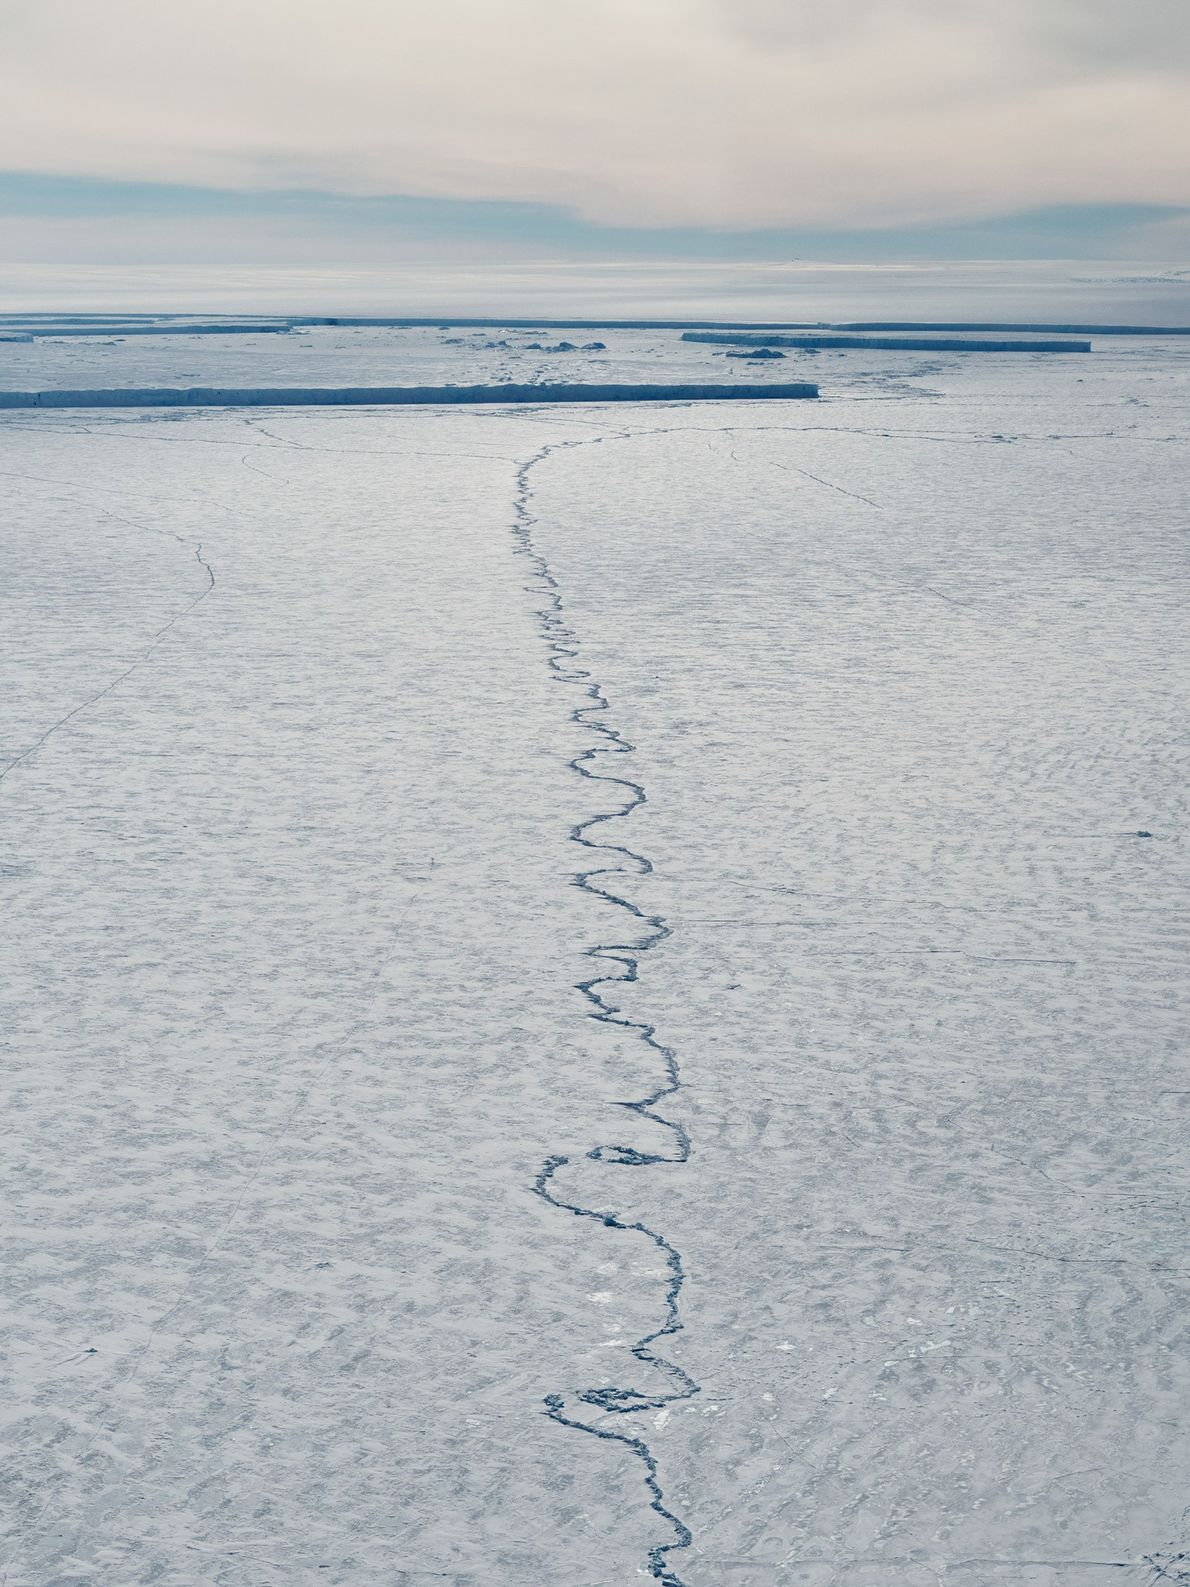 In the Pine Island ice shelf itself, another sinuous crack has started to form.